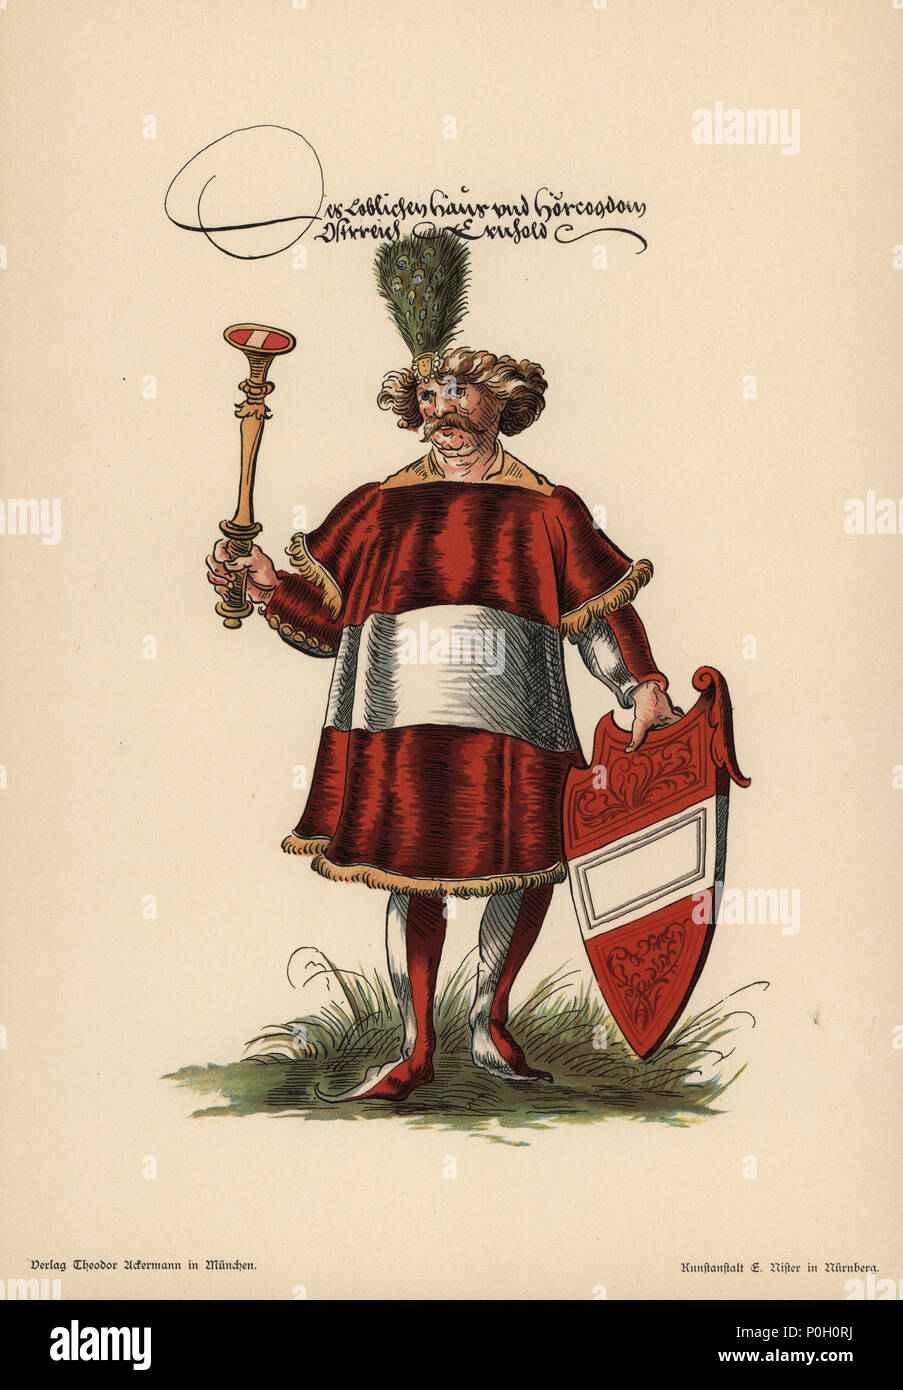 Austrian herald, Herold des Osterreich. He wears a peacock crest and armorial tunic and holds an escutcheon with the coat of arms of Austria. Chromolithograph from Otto Watzelberger's Beitraege zum Formenschatz der Heraldik (Contributions to the Vocabulary of Heraldry), Theodor Ackermann, Munich, 1900. Otto Watzelberger was Secretary of the Koeniglich Bayerischen Haus-Ritter-Ordens vom heiligen Georg (Royal Bavarian House Equestrian Order of Saint George). - Stock Image